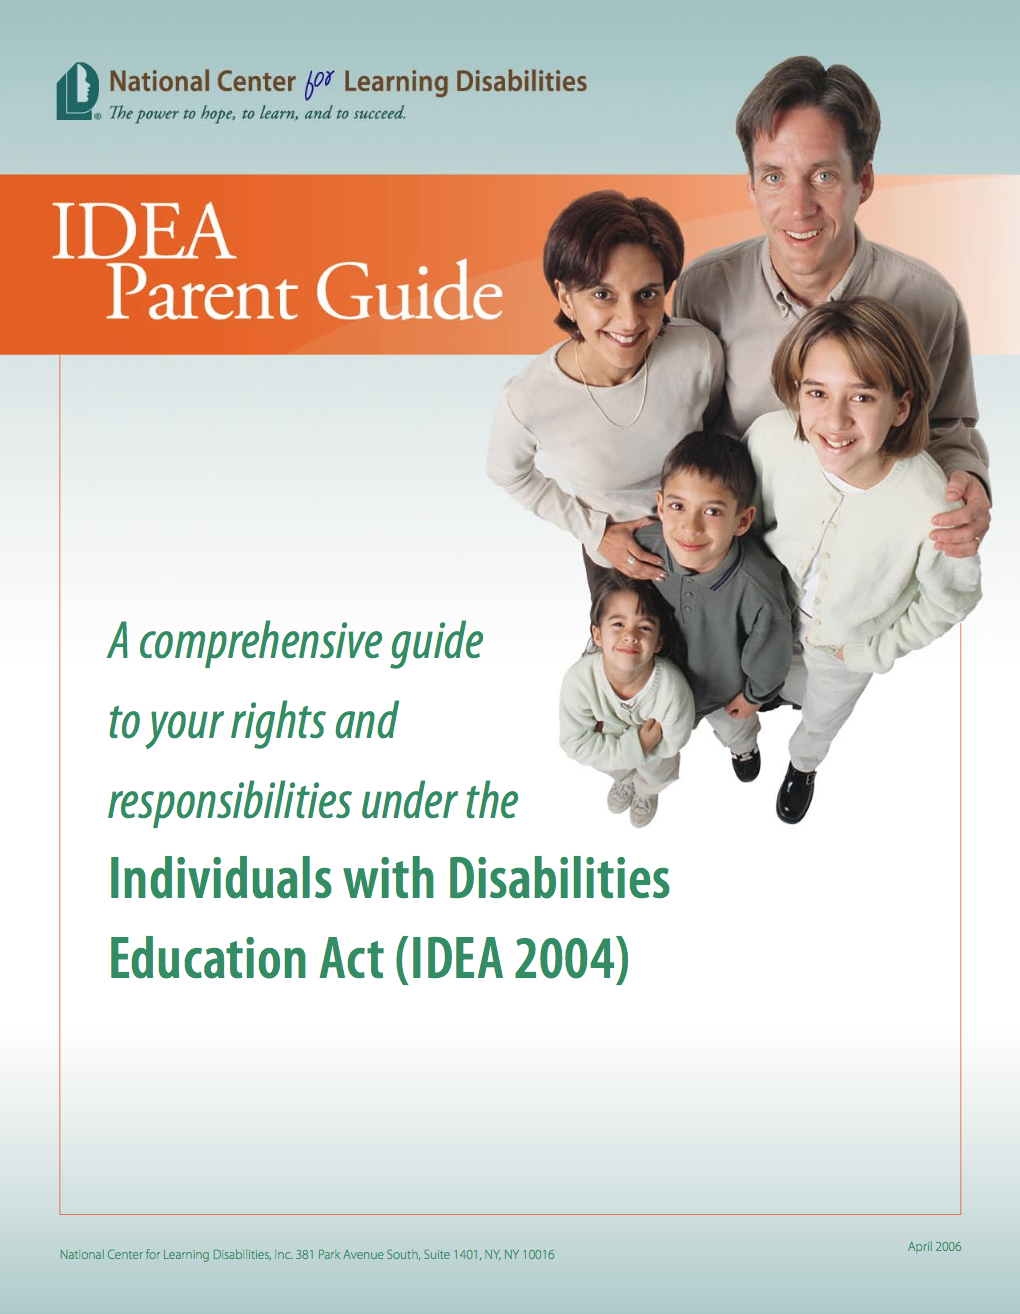 http://www.ncld.org/archives/reports-and-studies/idea-parent-guide-2